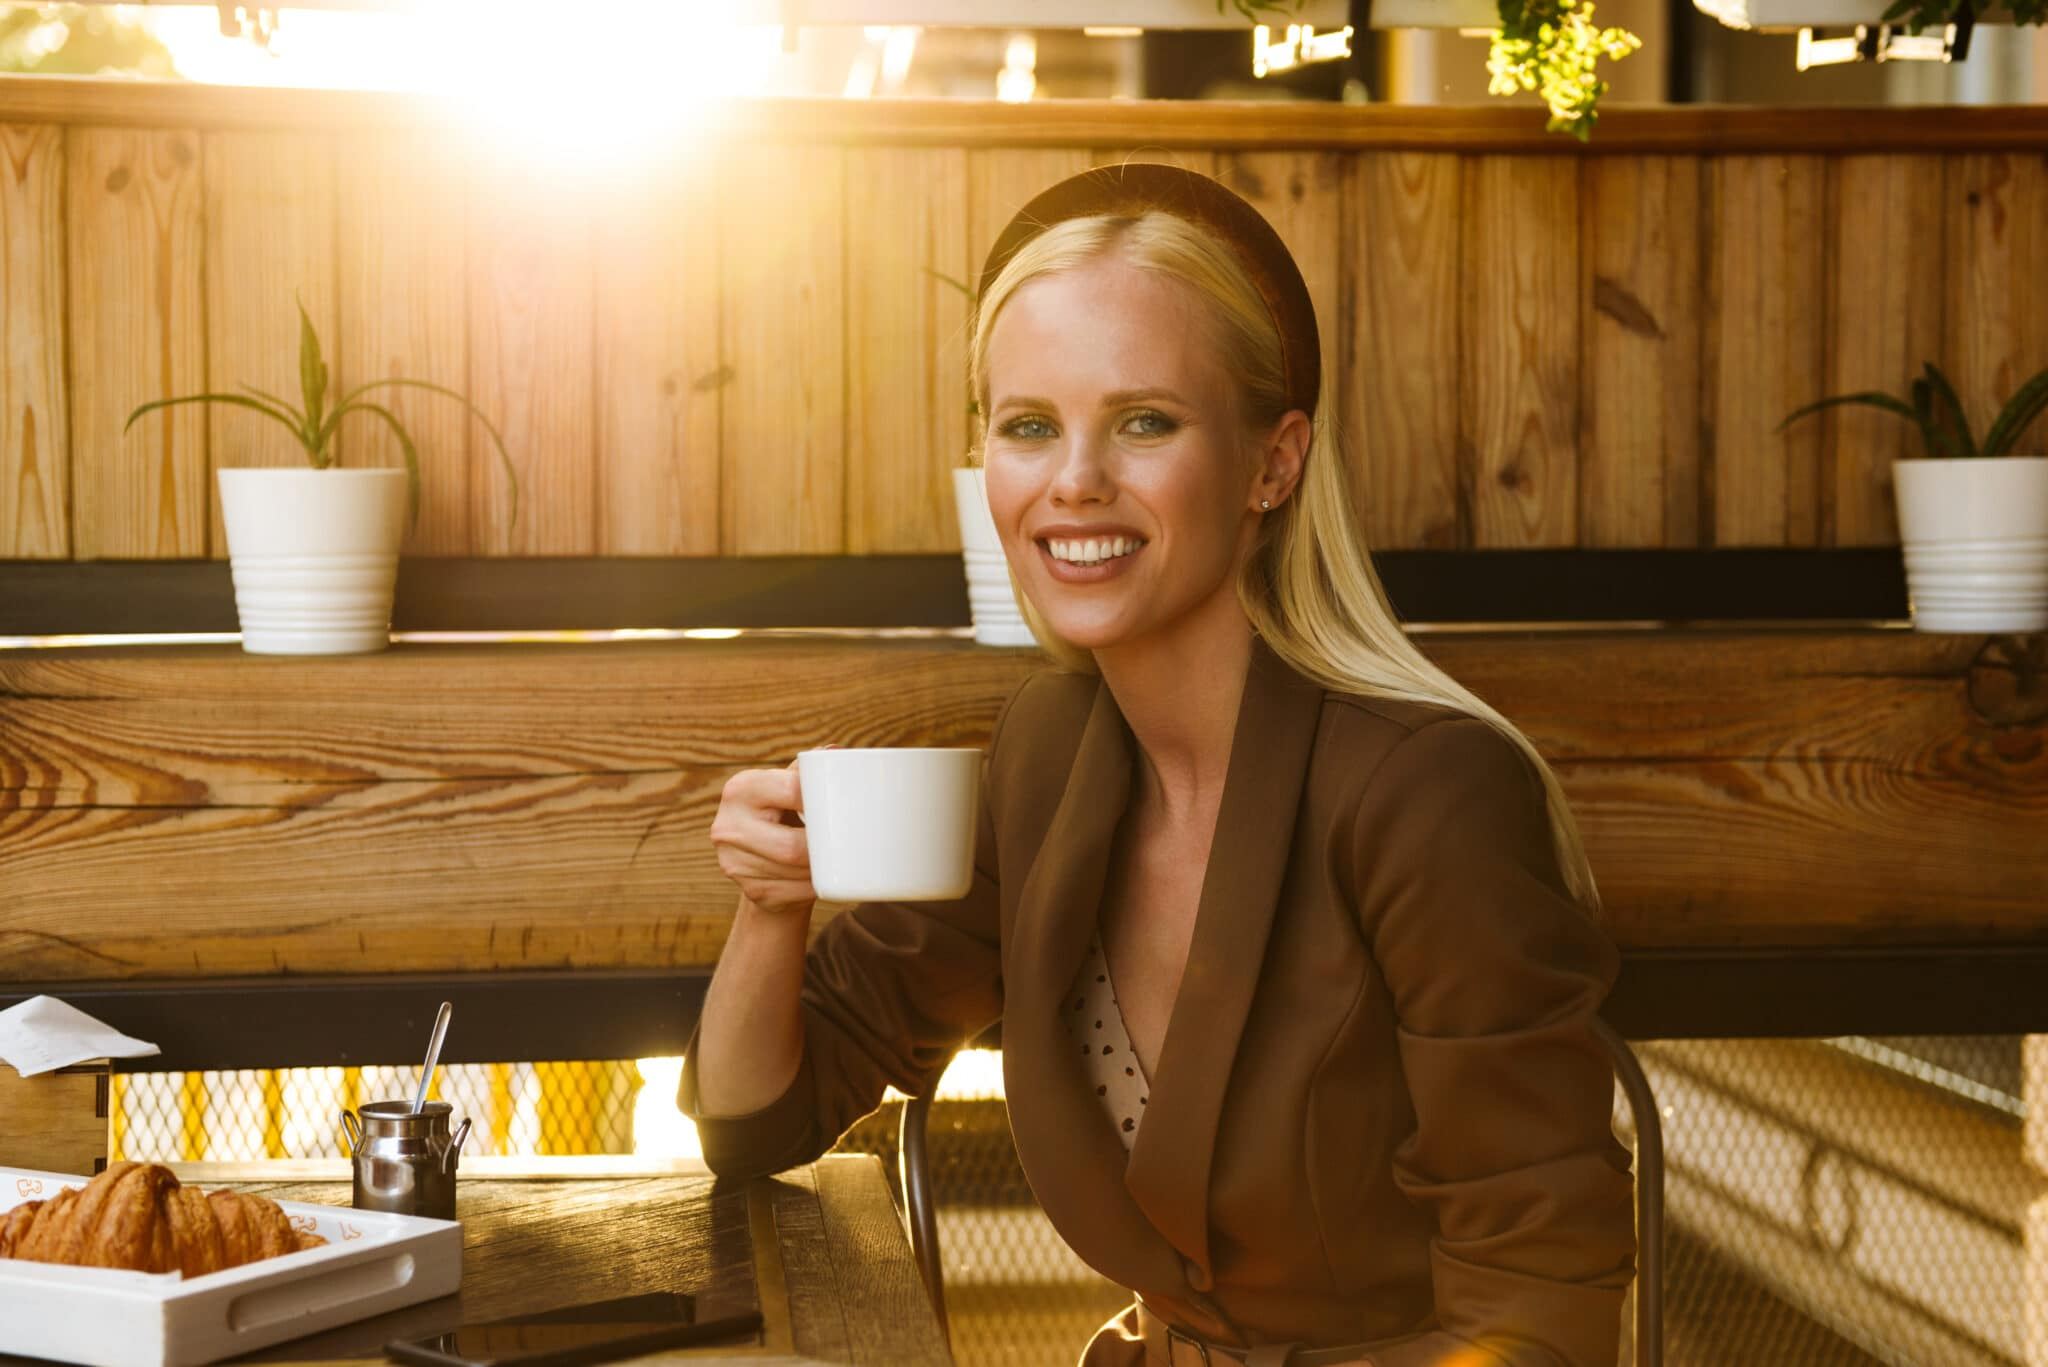 Businesswoman relieved from resolving her issues before the tax deadlines